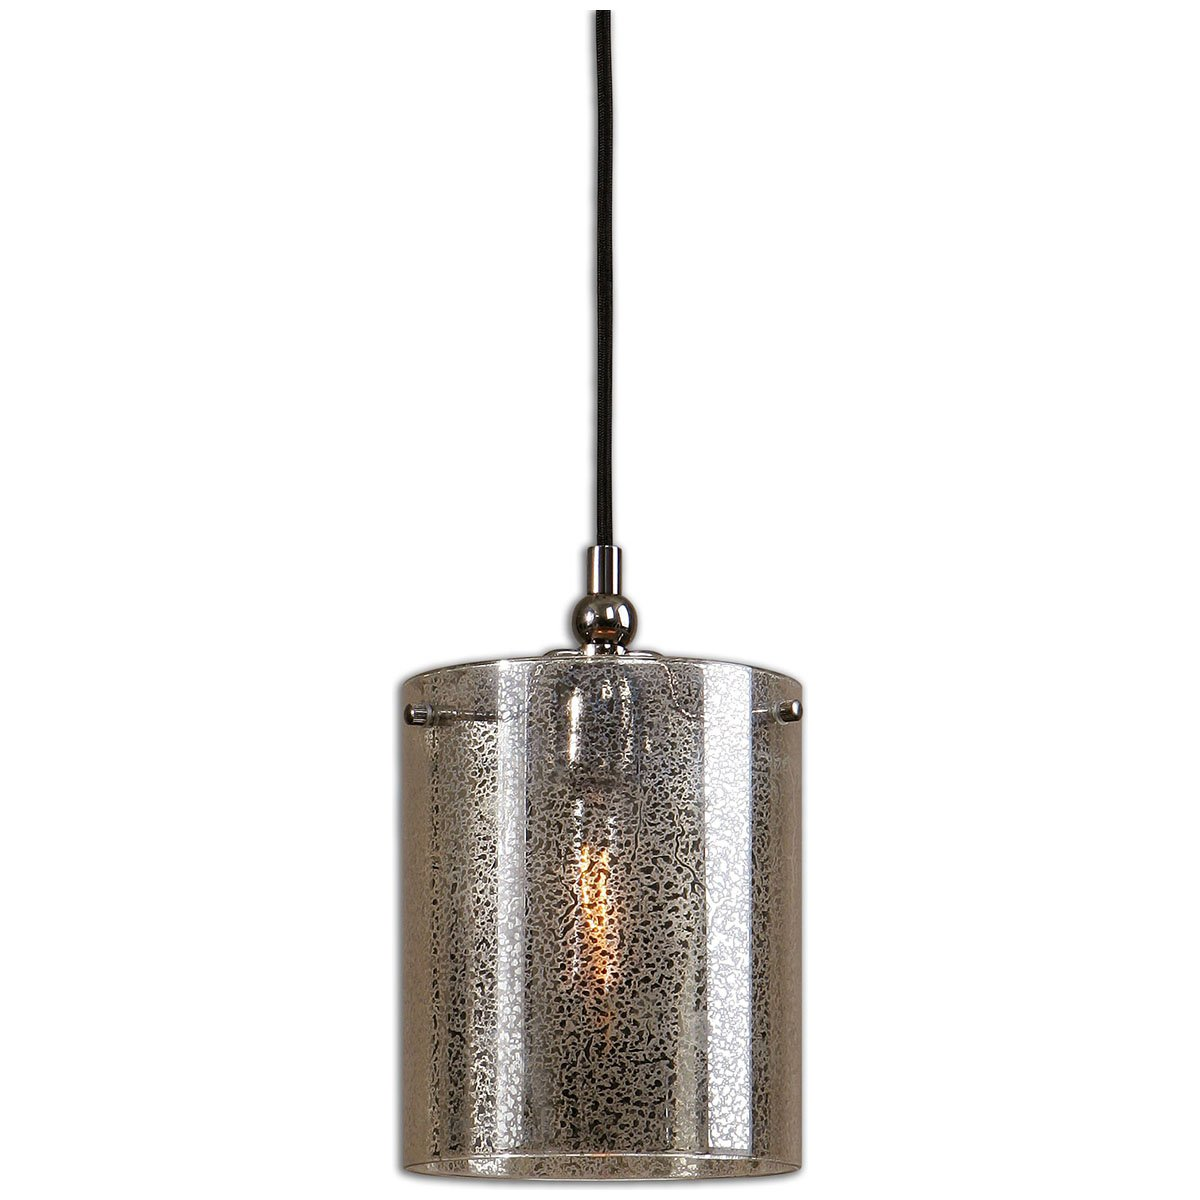 best inside pendant for mercury light glass of anthropologie lights at unique decor fixtures